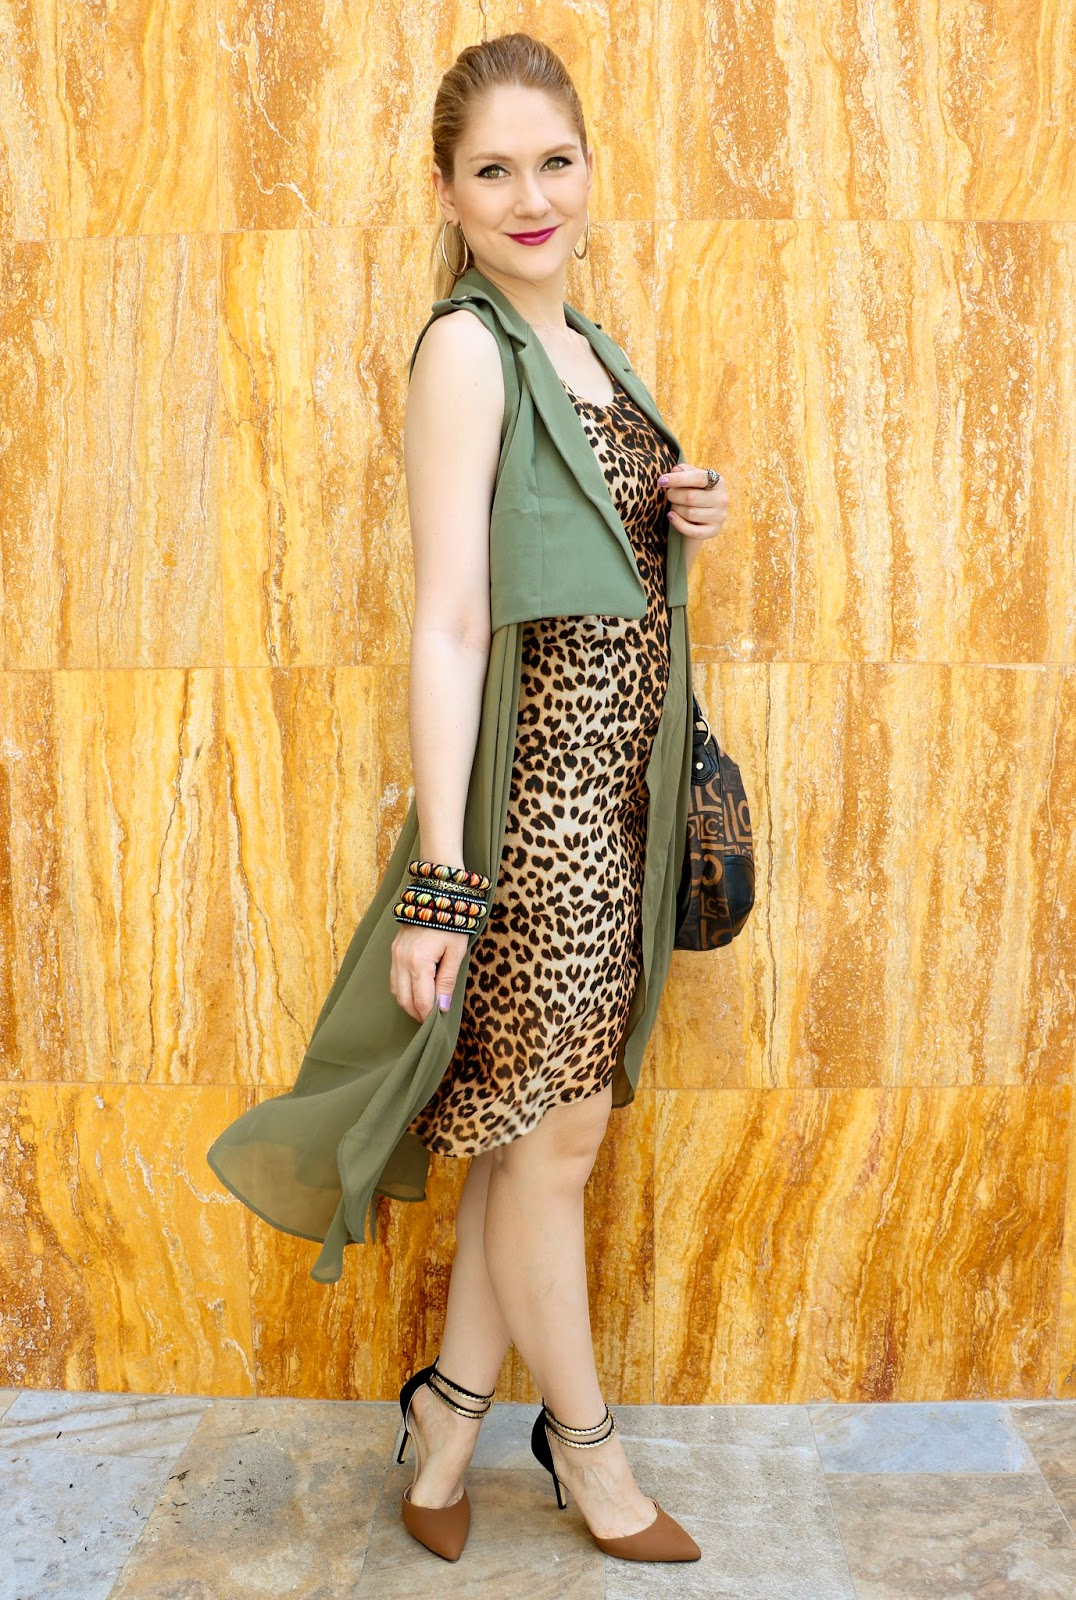 Loving this Leopard Dress combo!